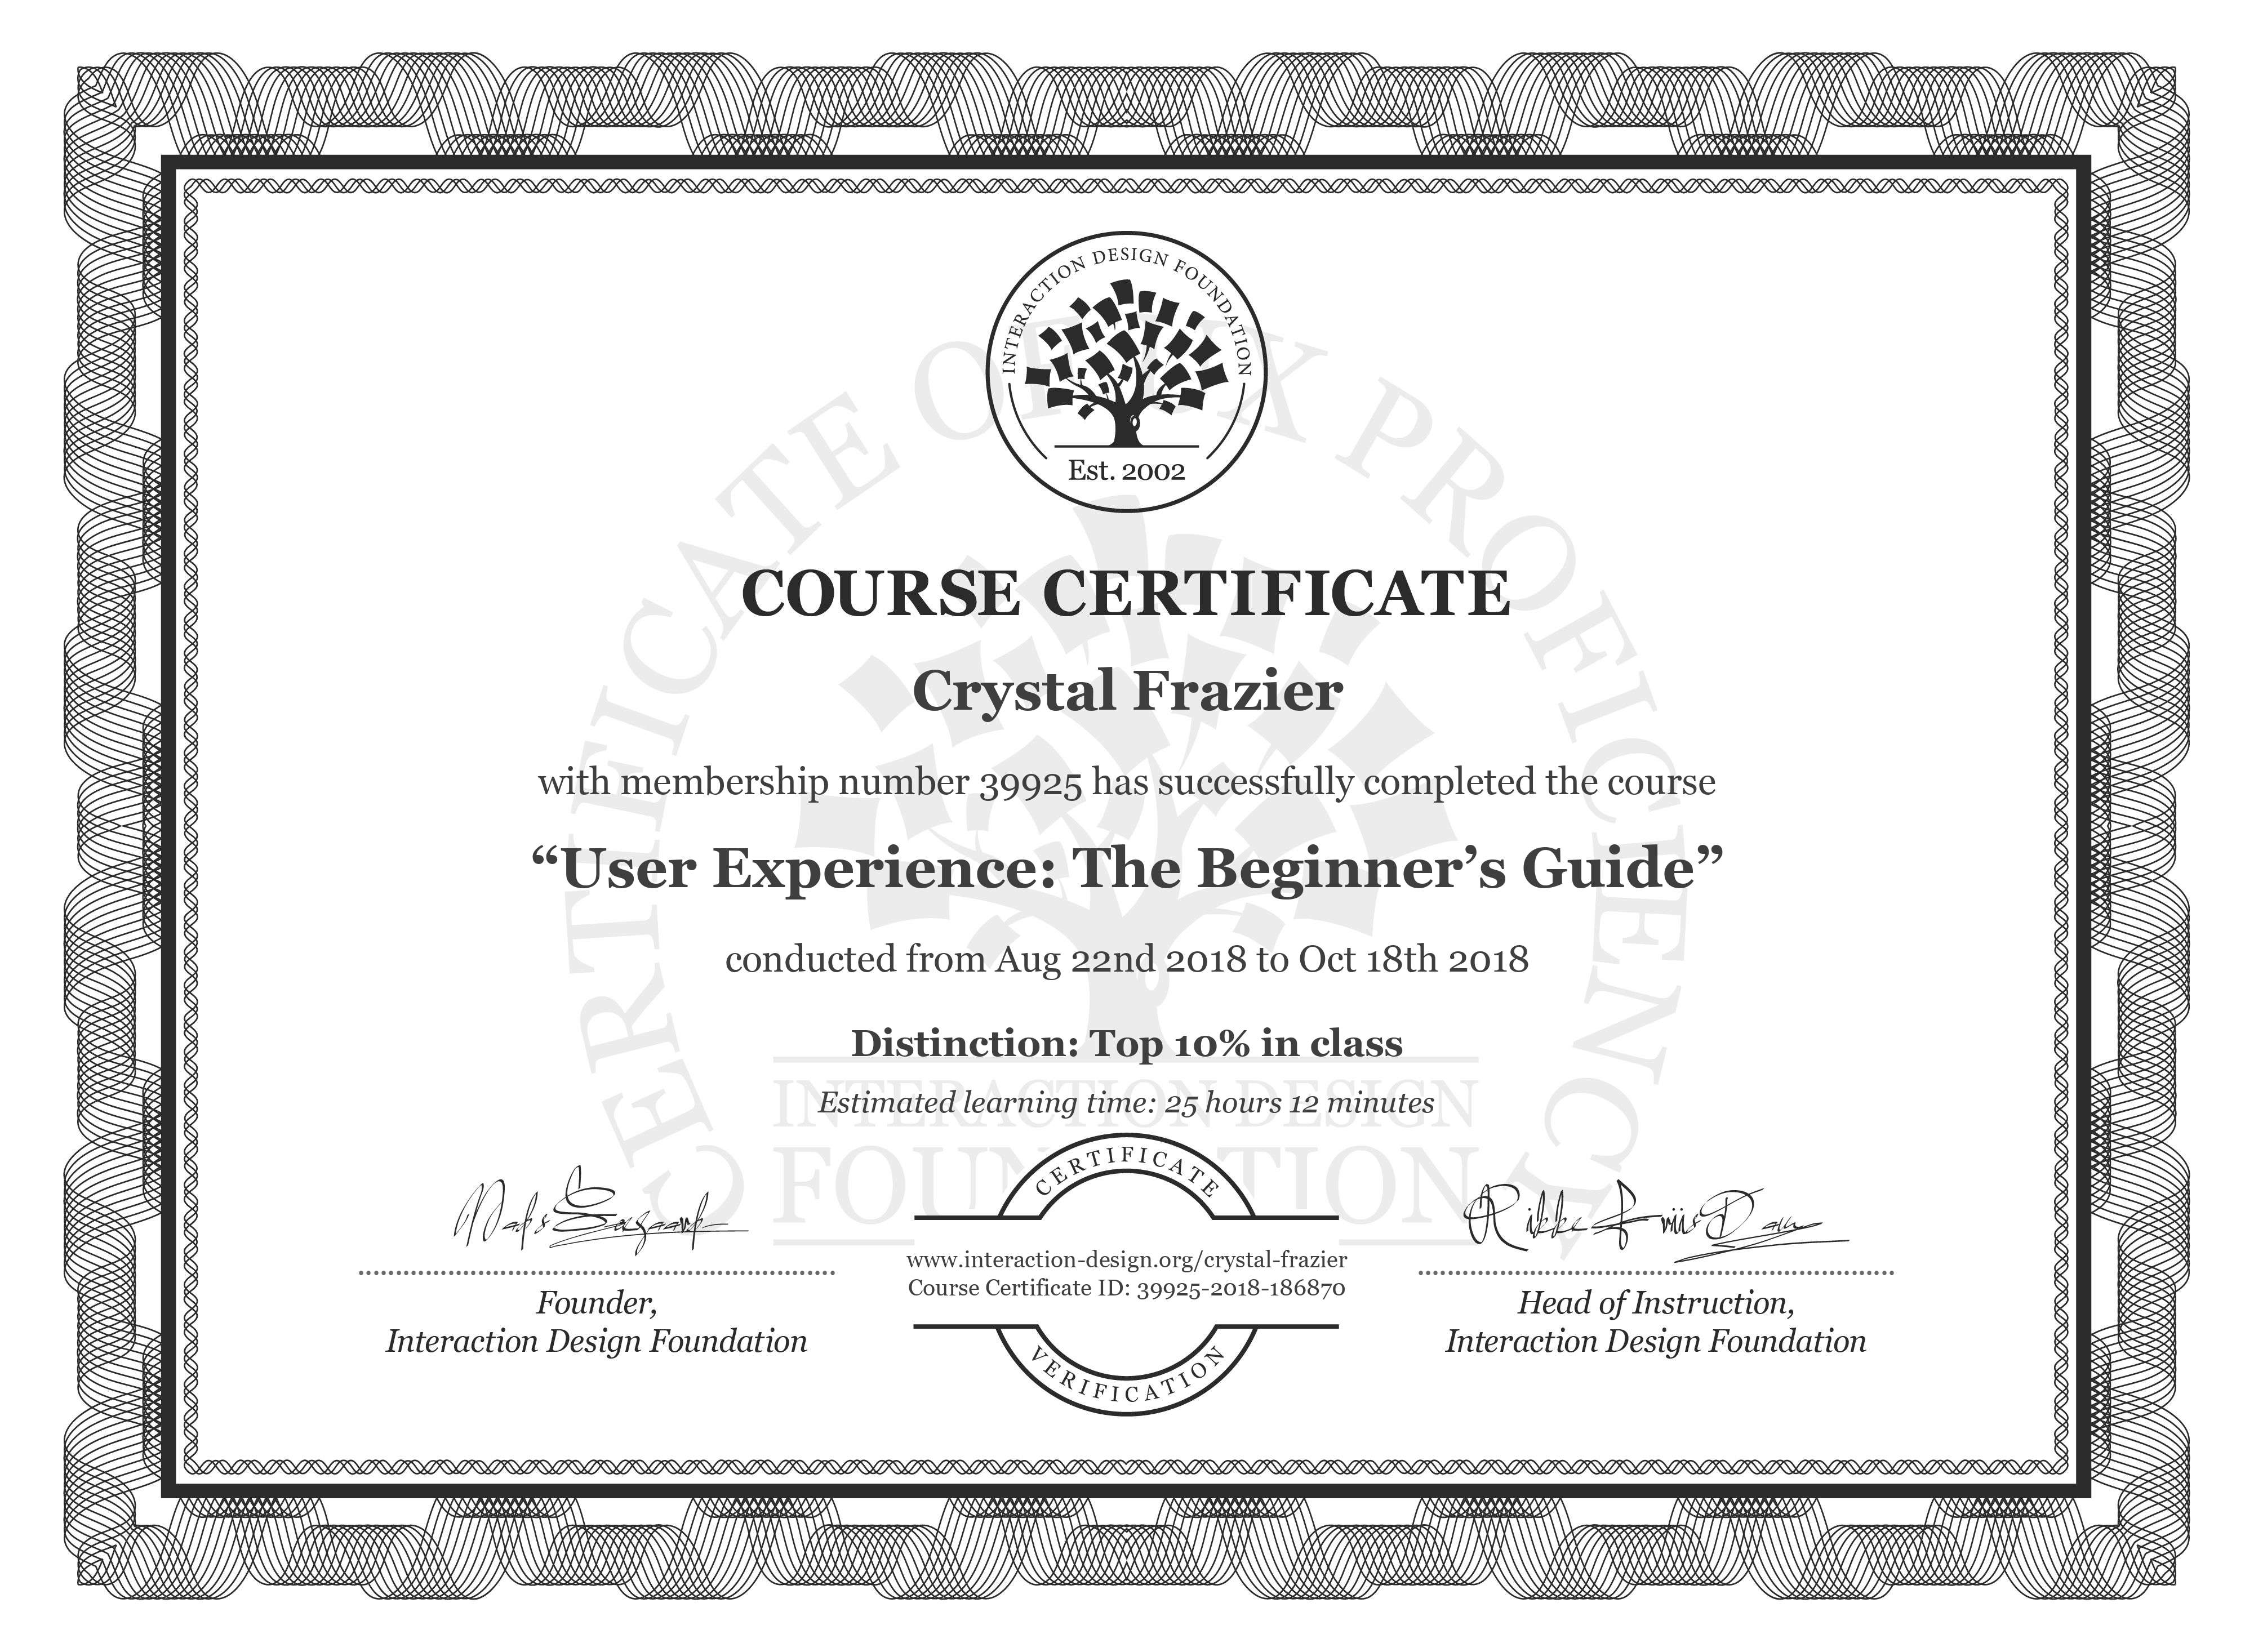 Crystal Frazier's Course Certificate: Become a UX Designer from Scratch